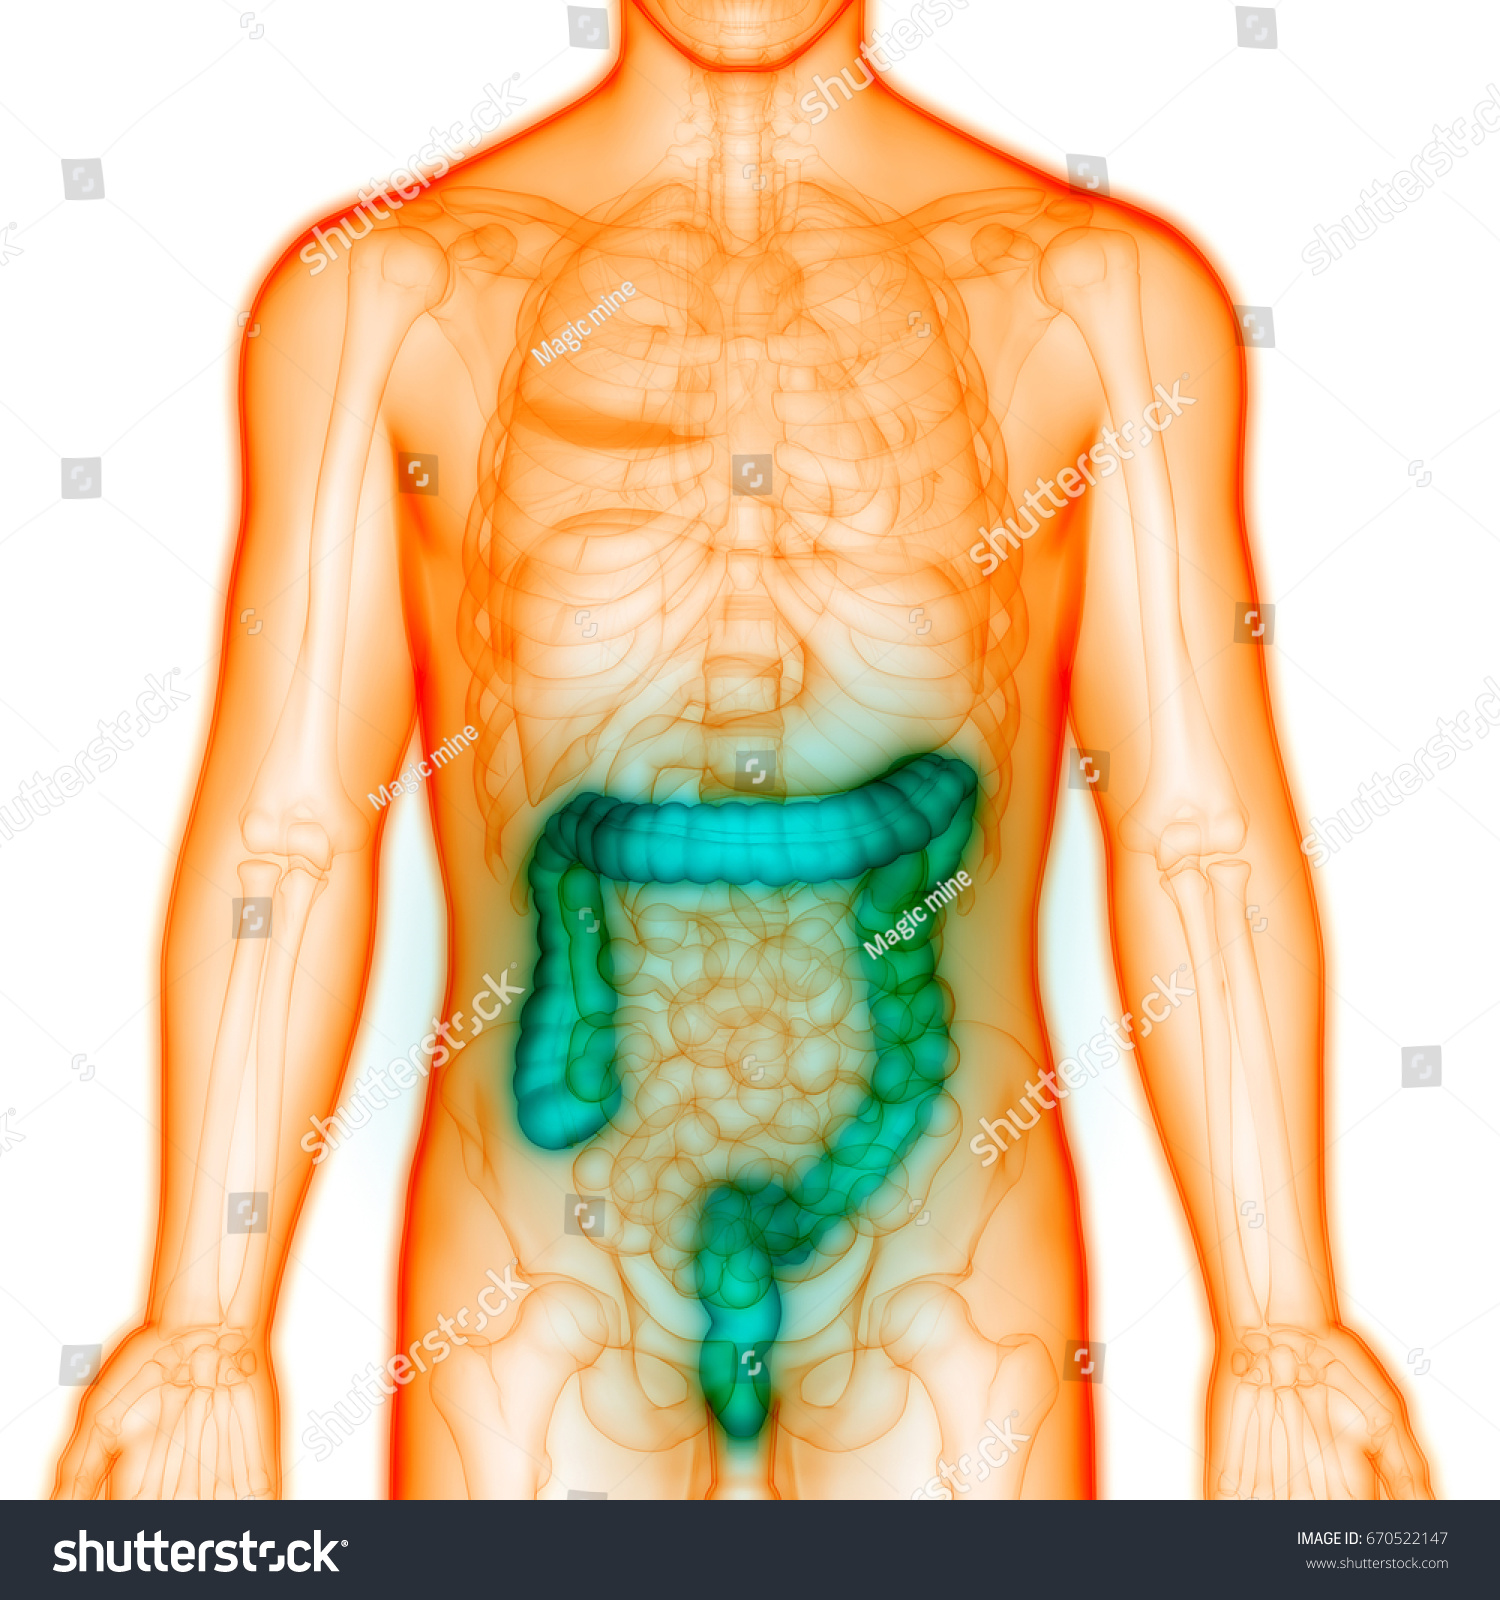 Human Digestive System Anatomy Large Intestine Stock Illustration ...